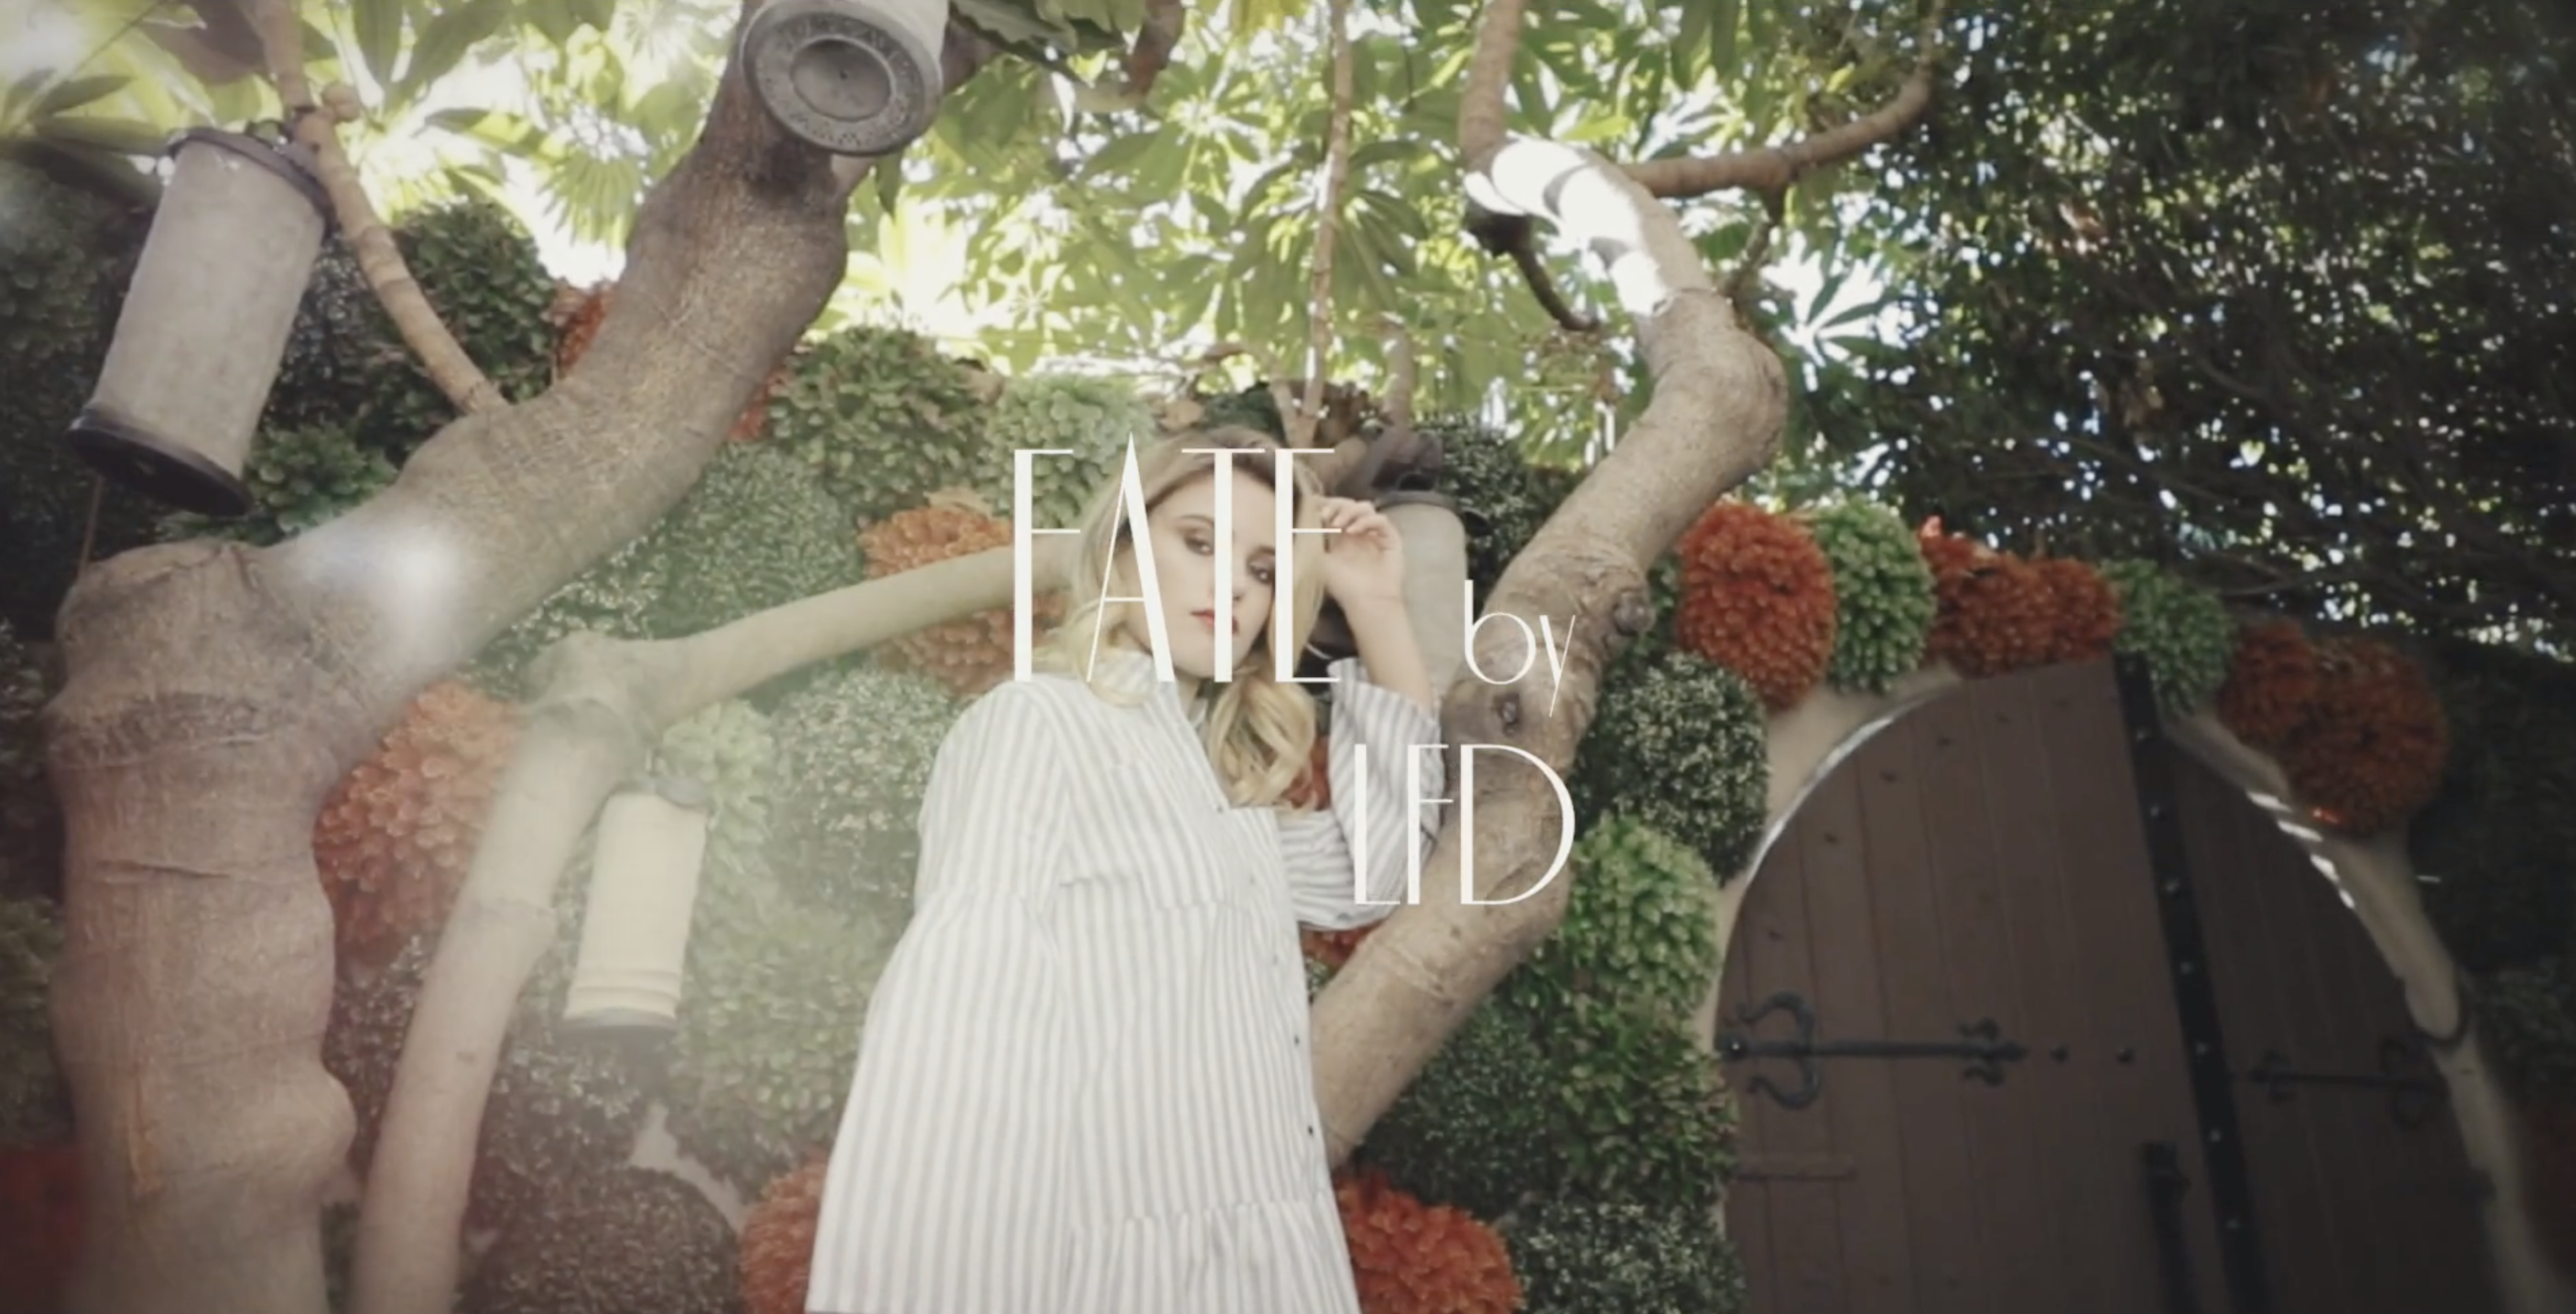 Fate by LFD 2018 |Spring/Summer